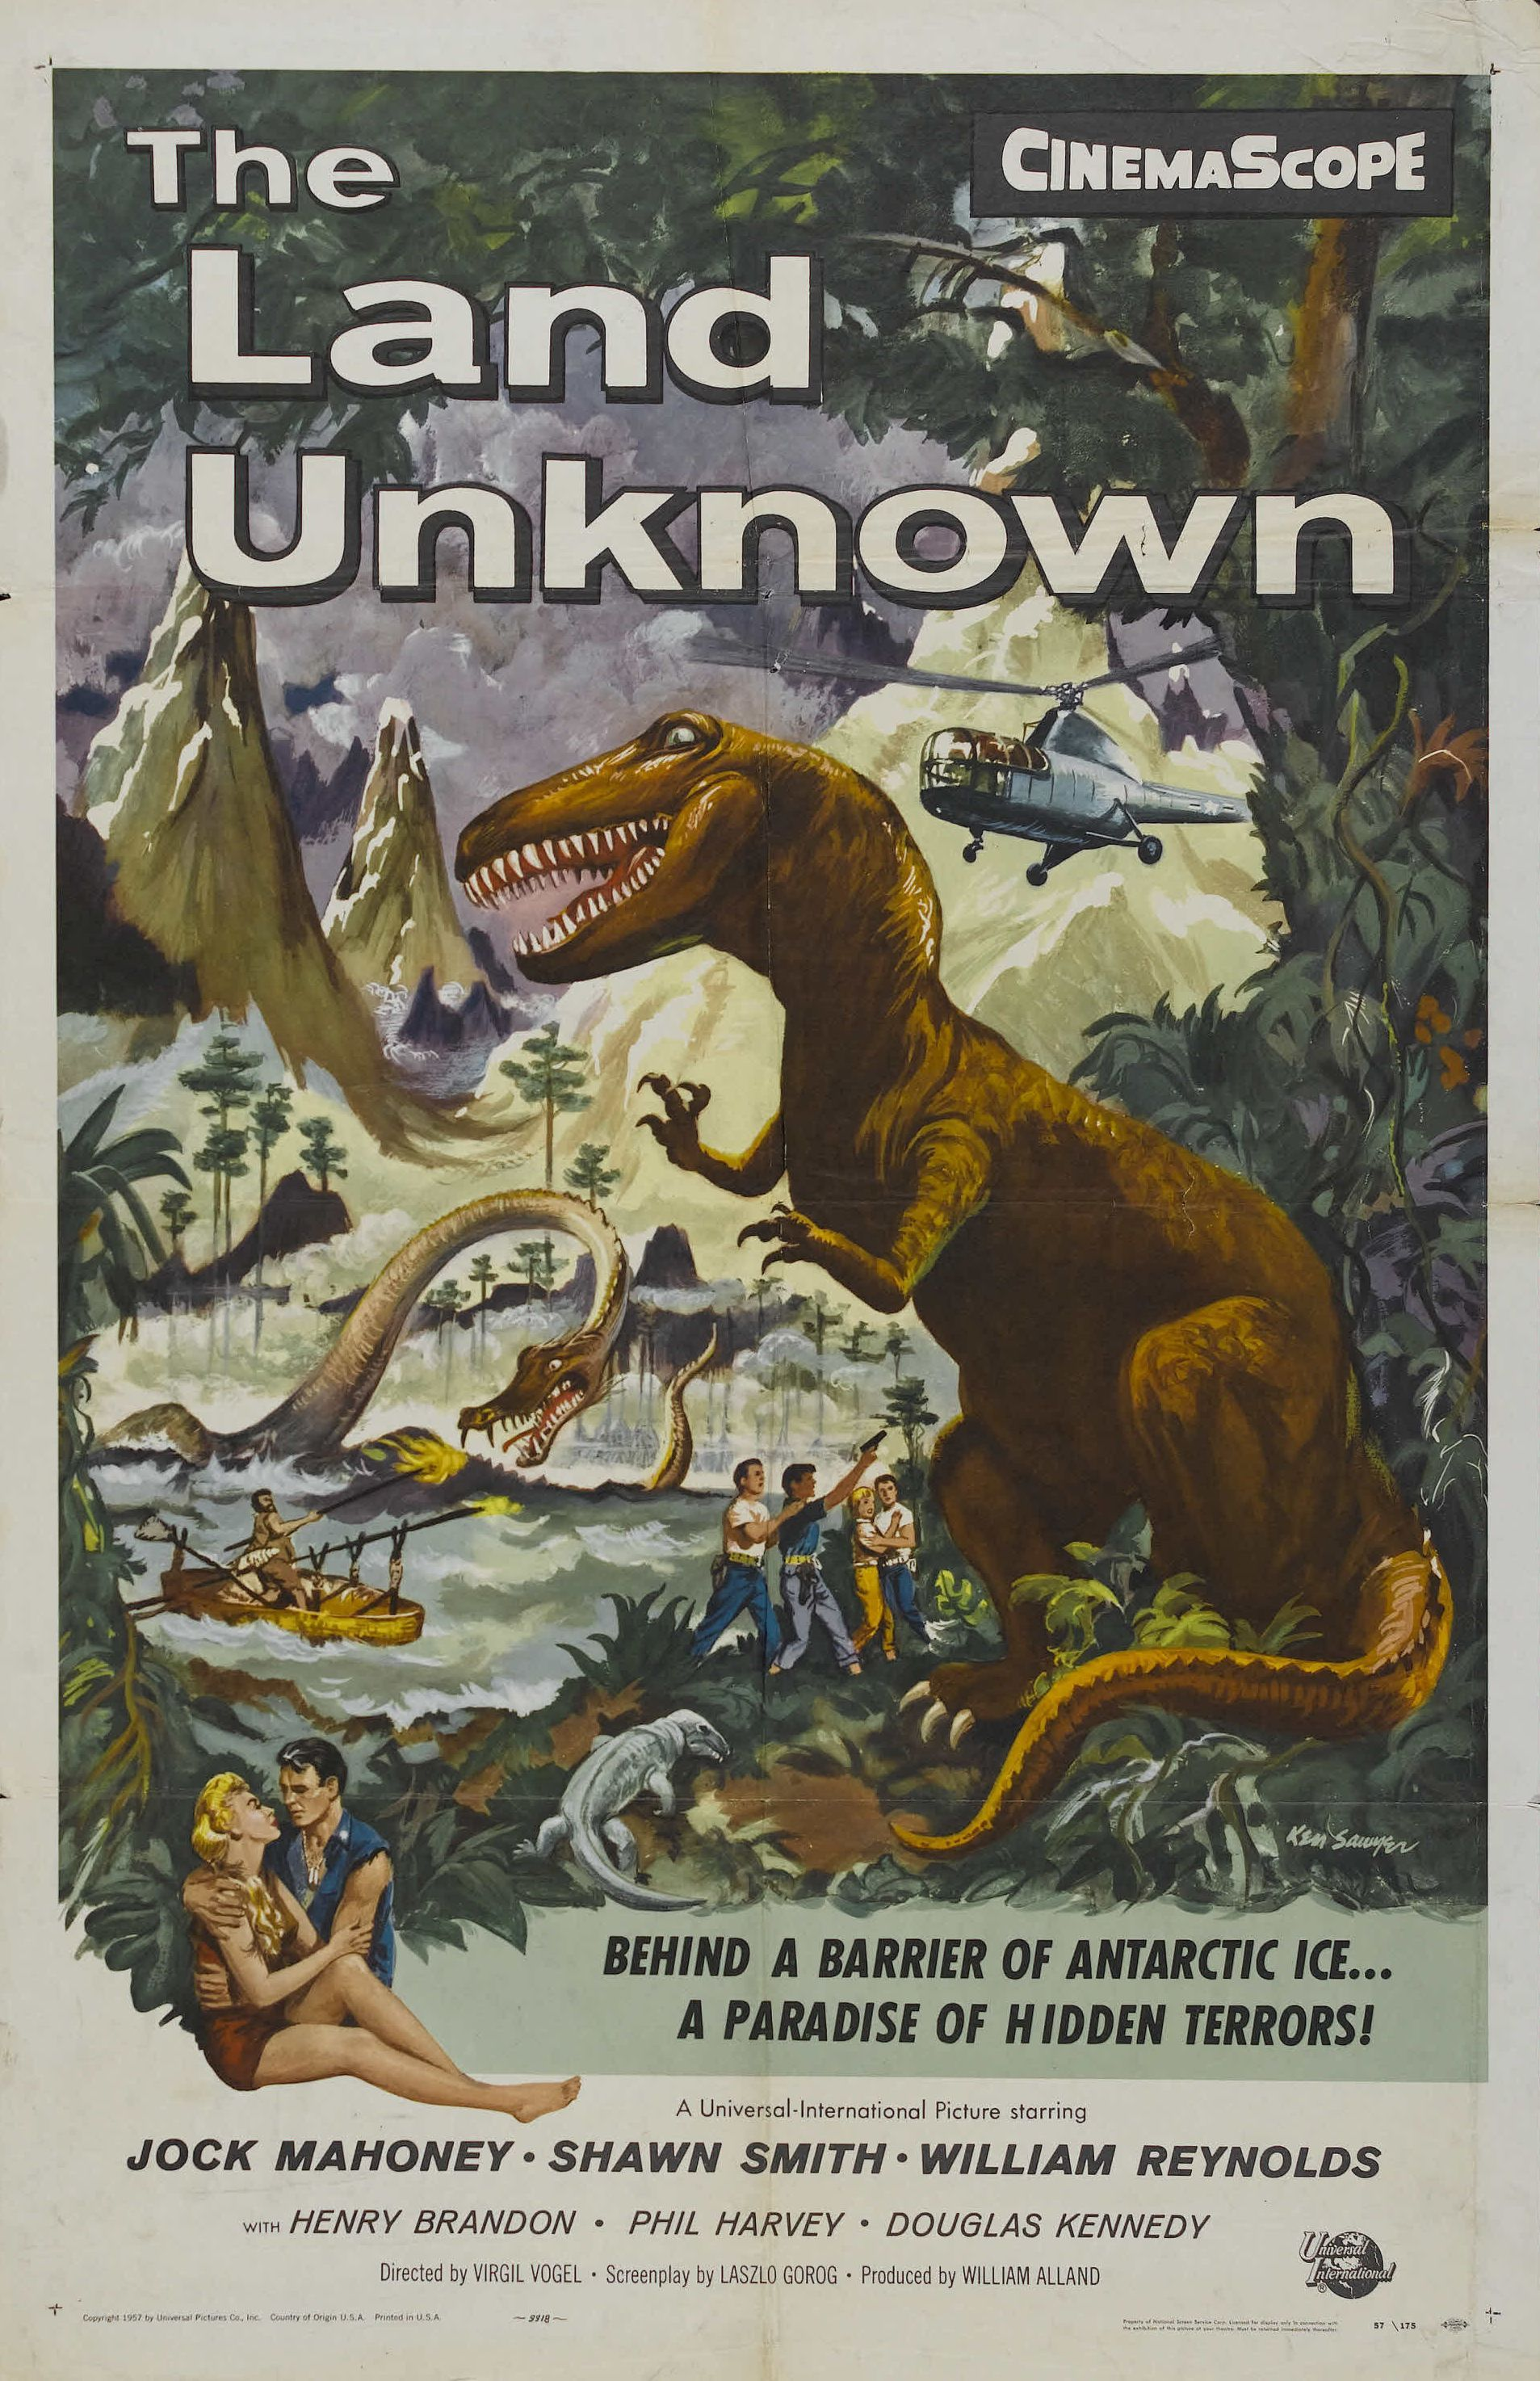 The Land Unknown (1957) Horror movie posters, Movie posters